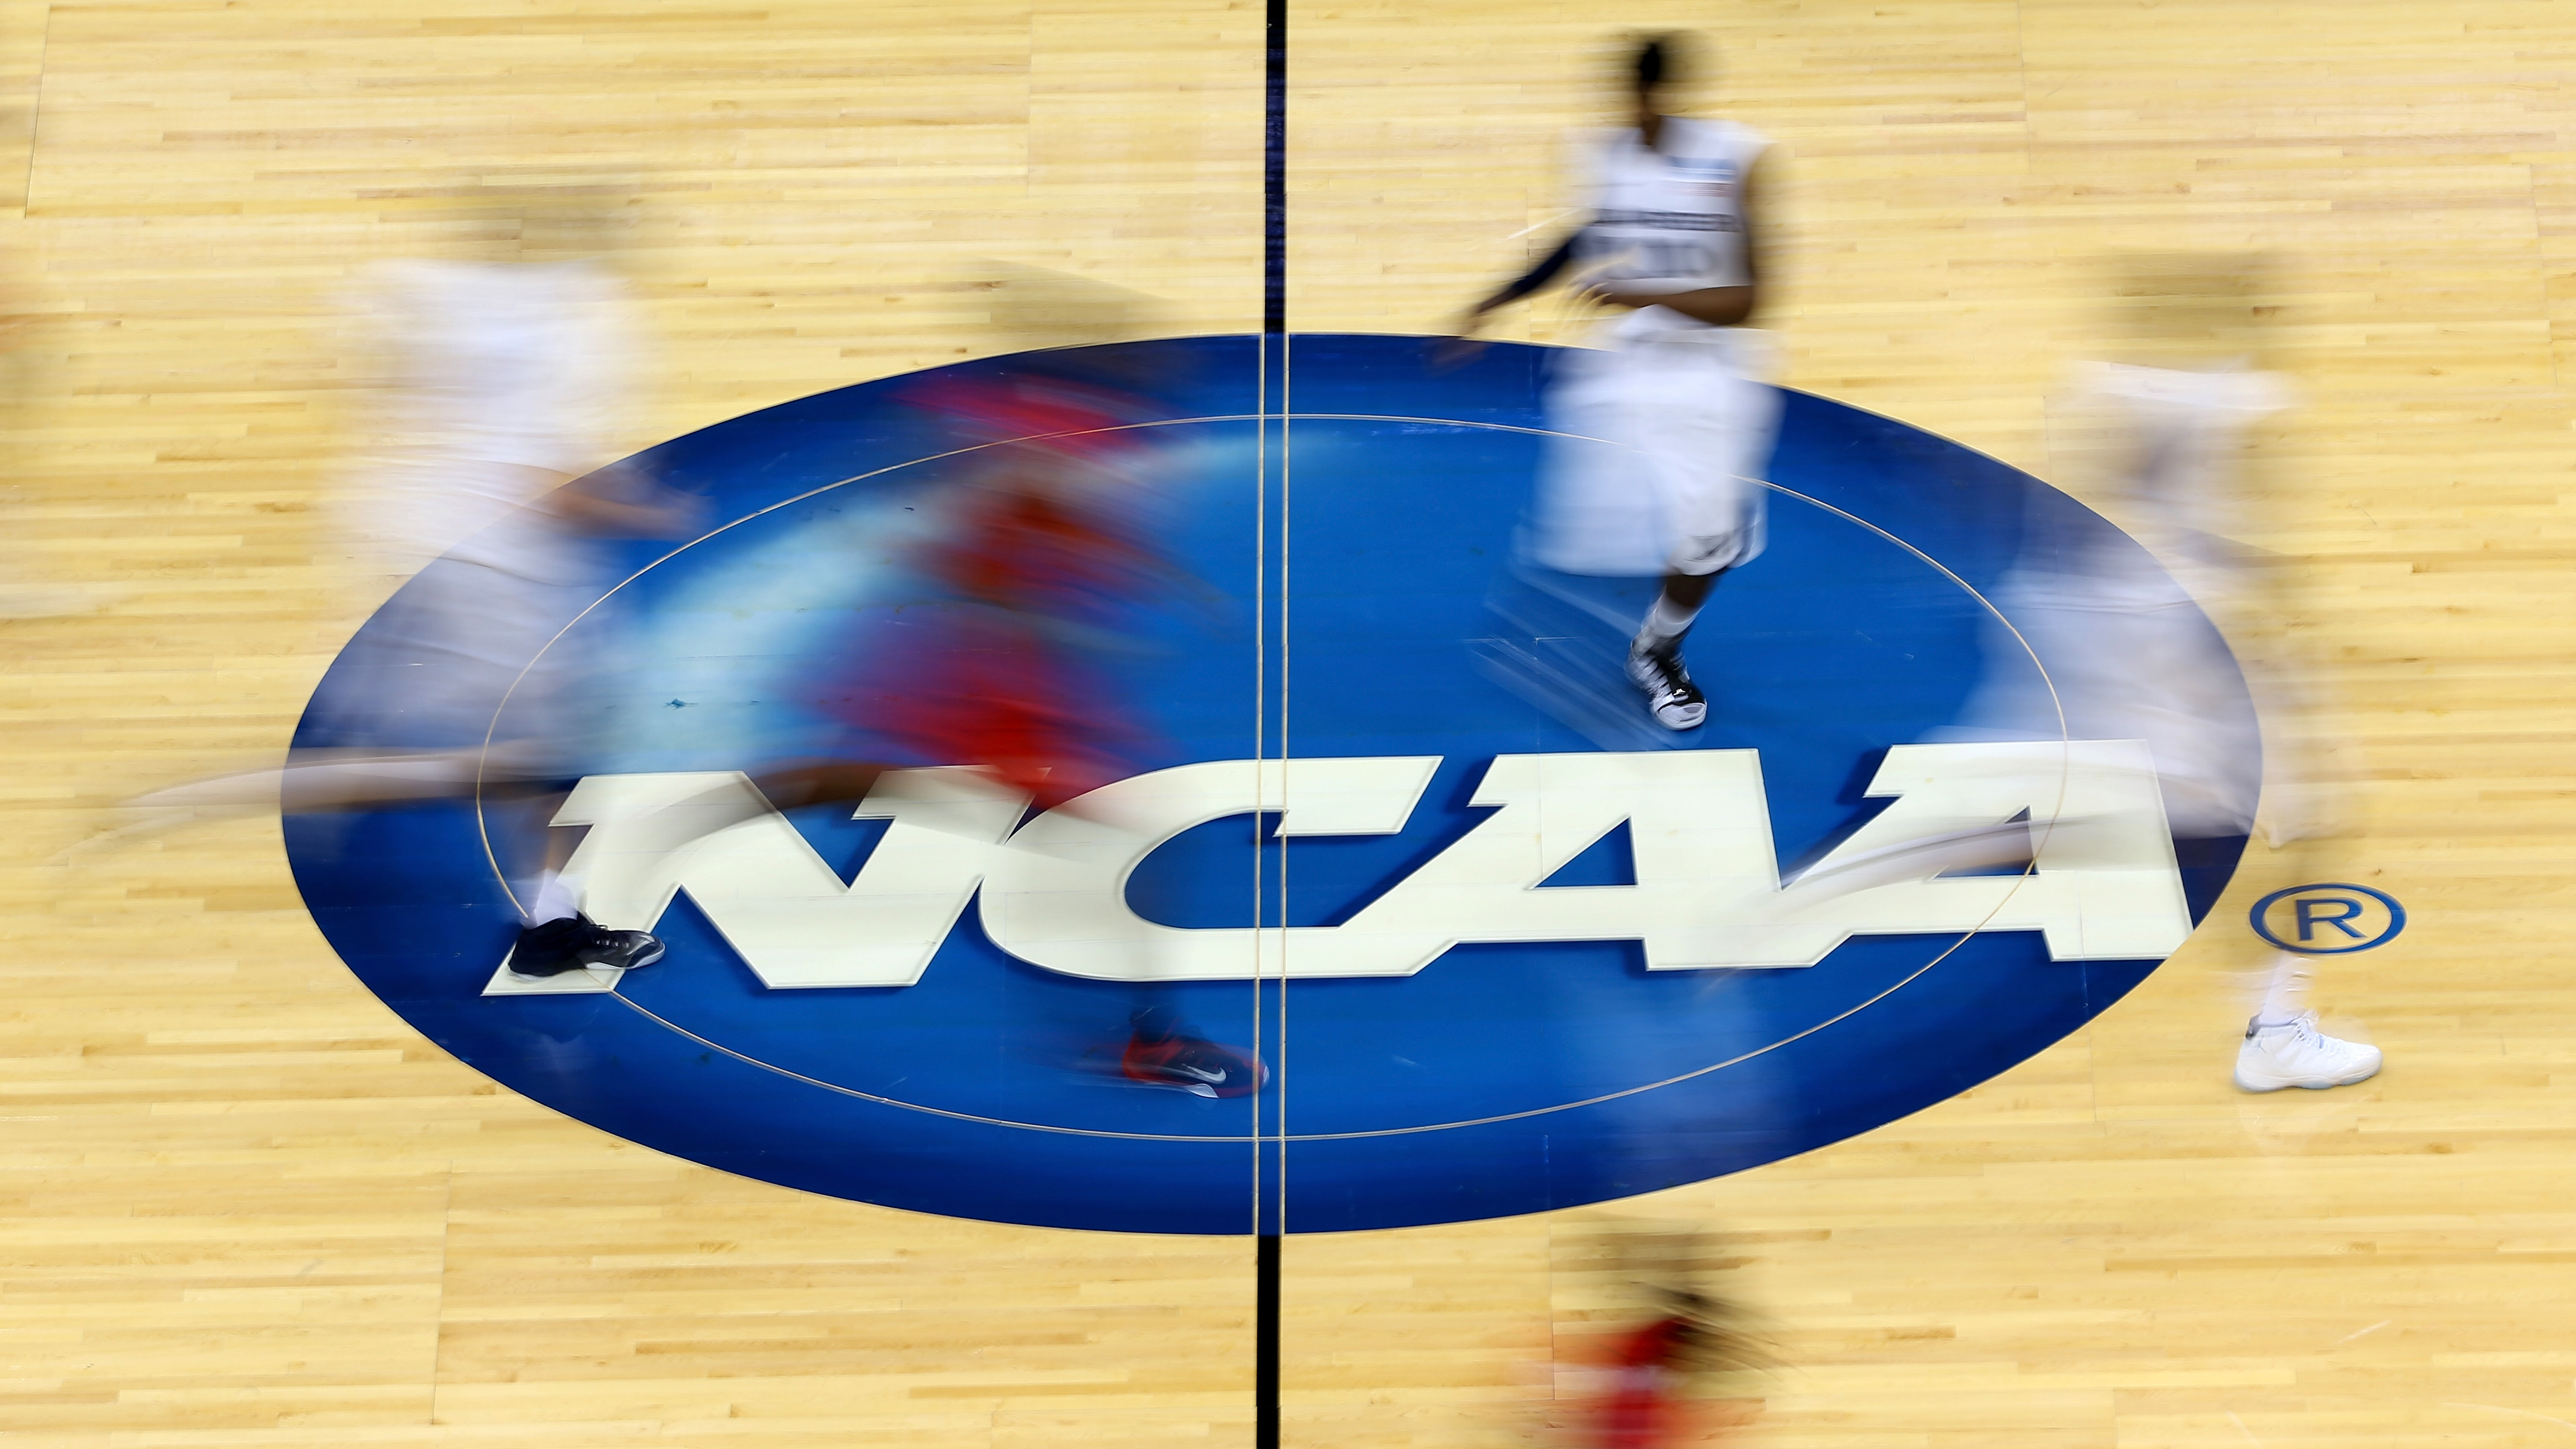 Supreme Court rules against NCAA, opening door to significant increase in compensation for student athletes